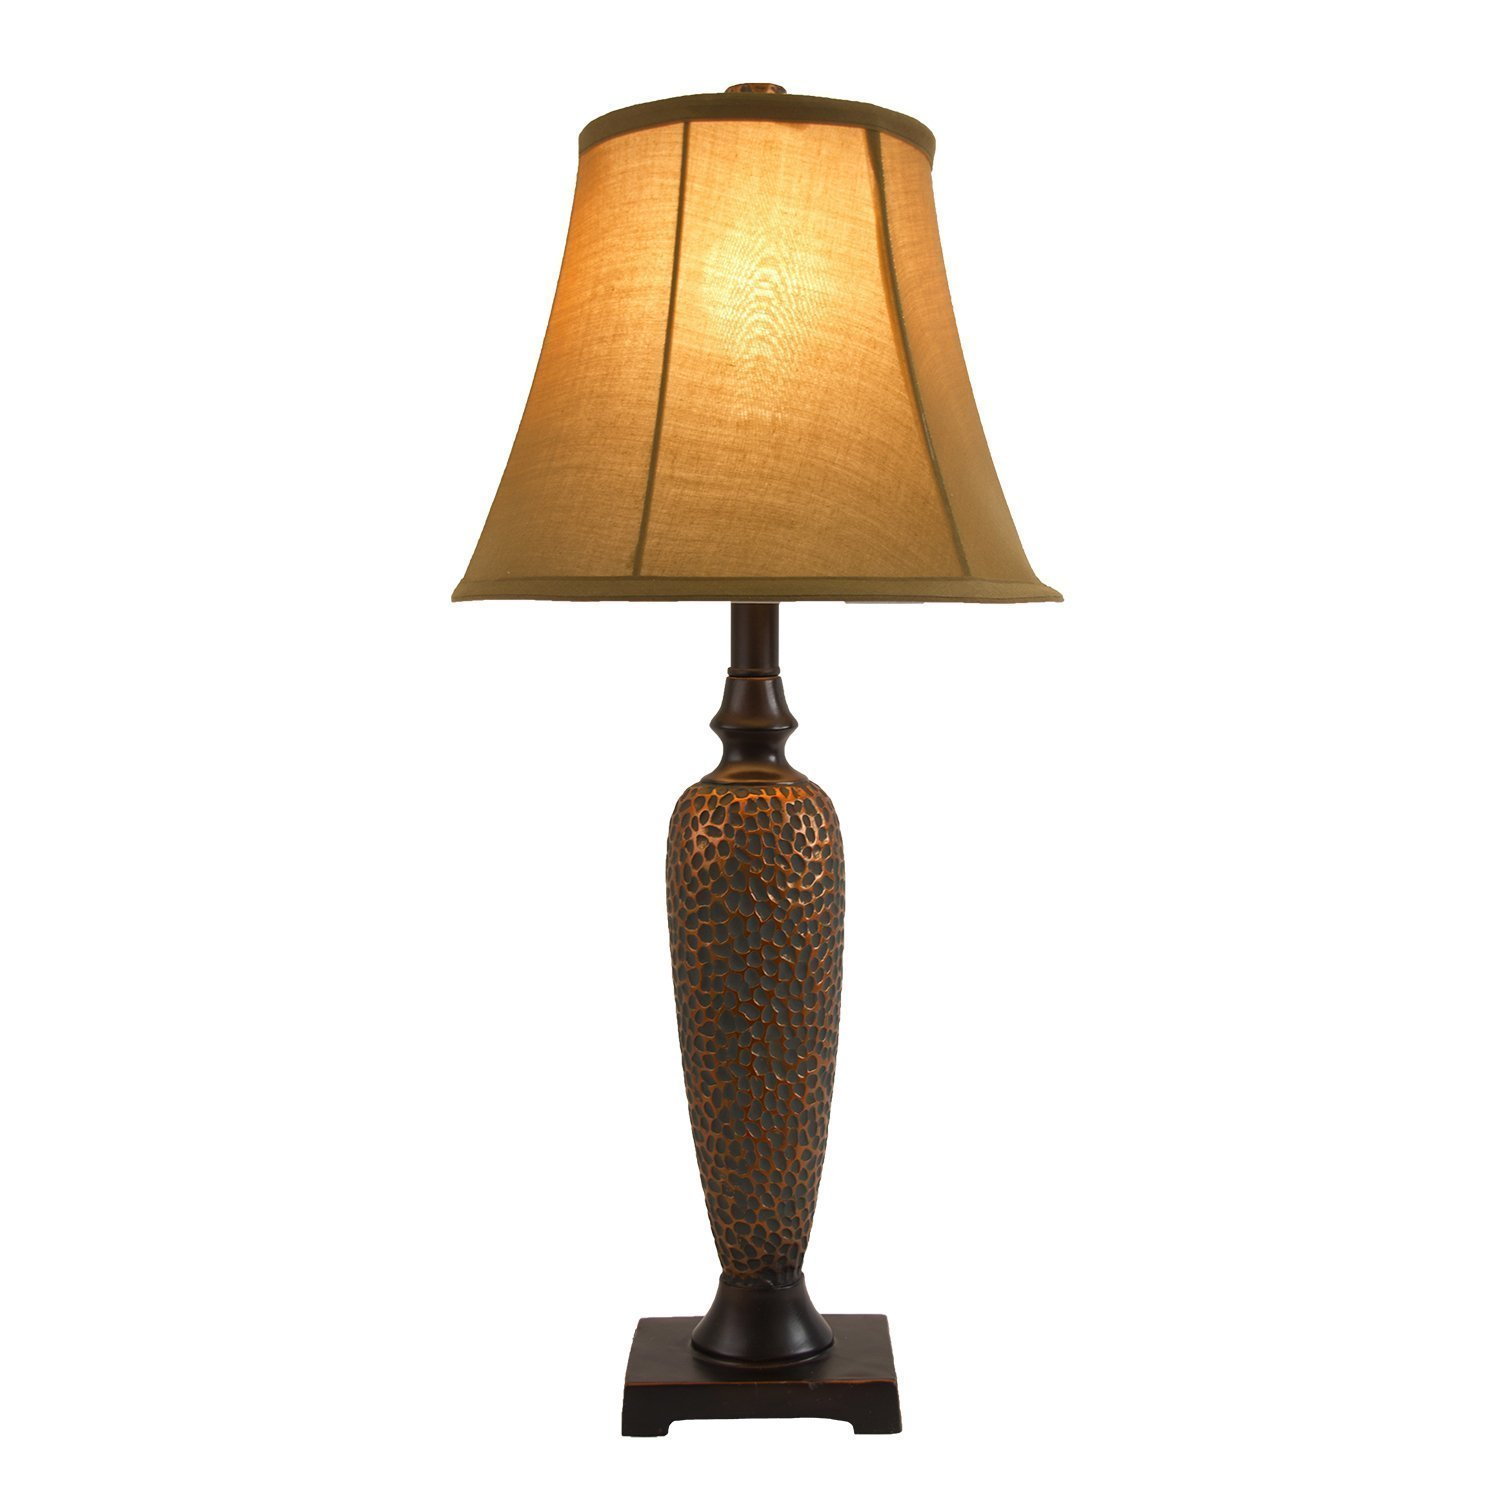 Elegant Designs Hammered Bronze Three Pack L& Set (2 Table L&s 1 Floor L&) - Roost and Galley  sc 1 st  Roost and Galley & Elegant Designs Hammered Bronze Three Pack Lamp Set (2 Table Lamps ...